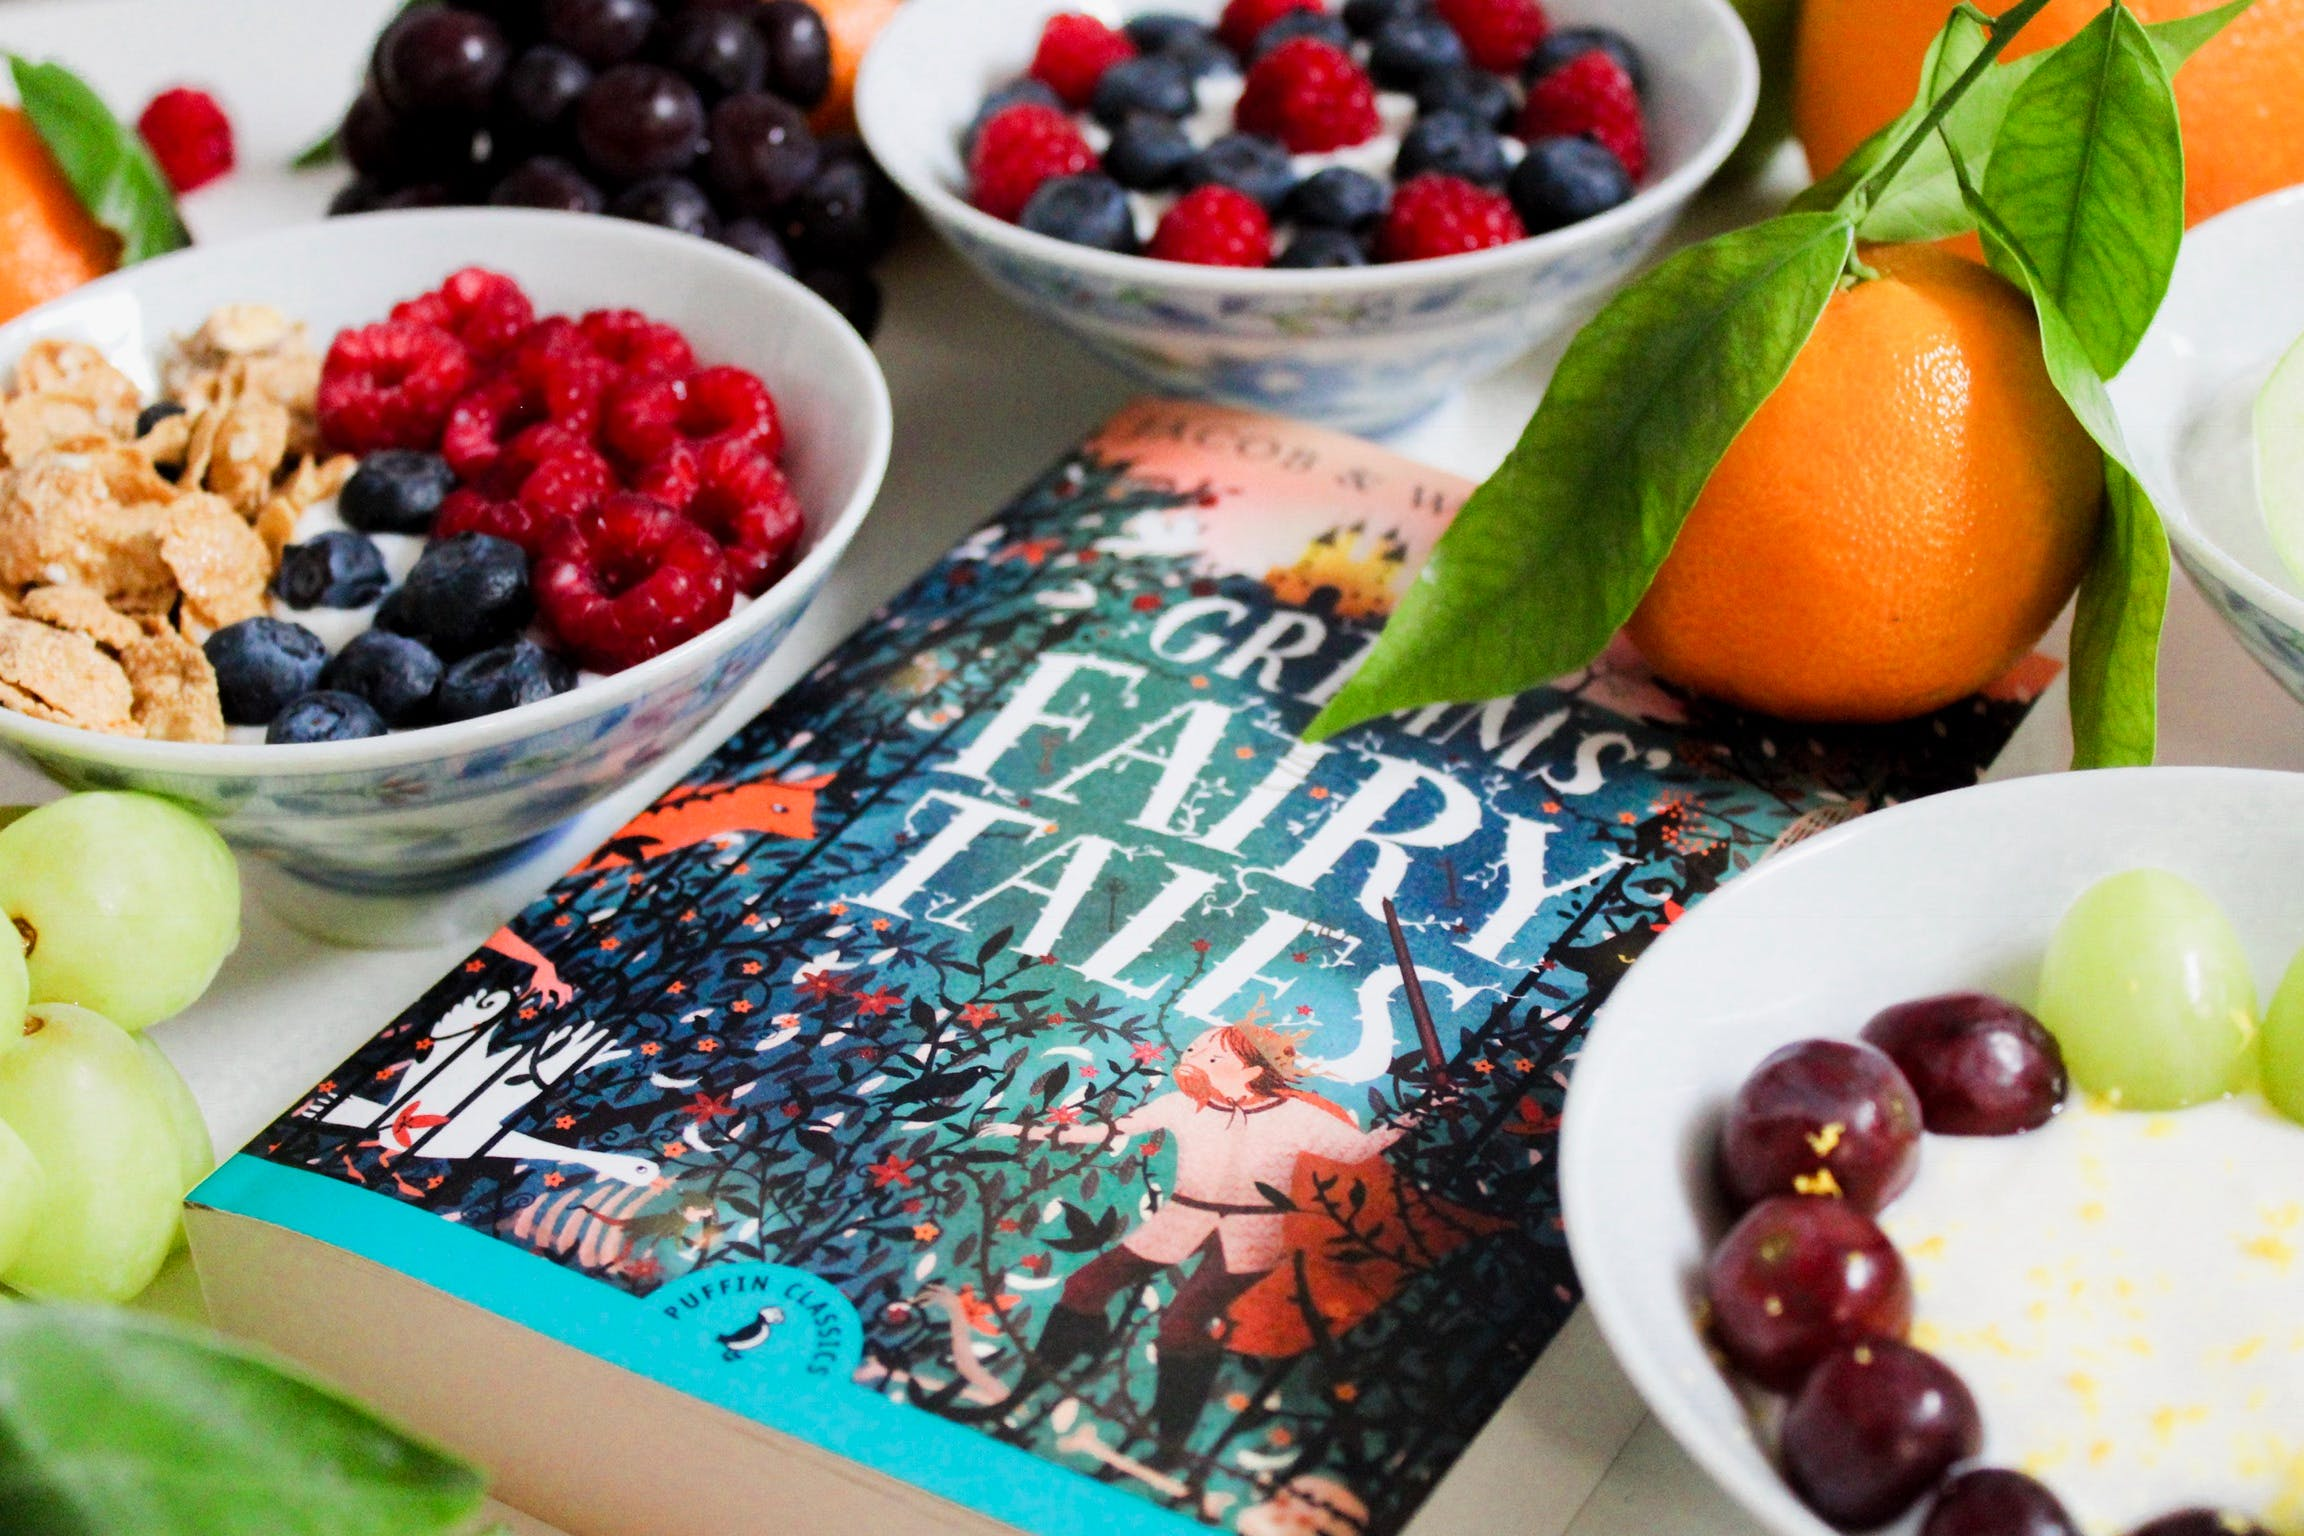 Grimms Fairy Tales Book Surrounded by Fruits